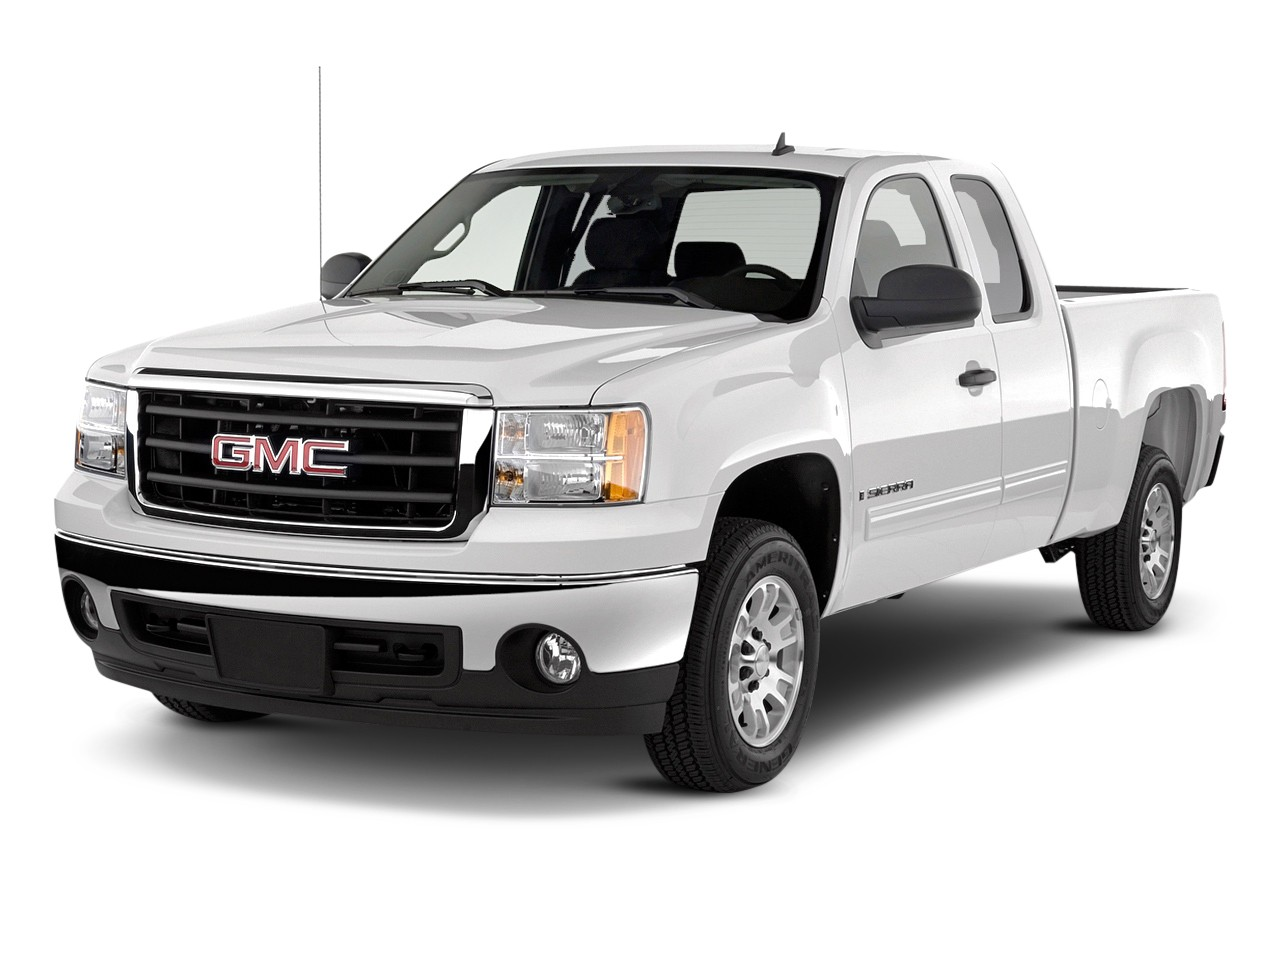 GMC Sierra 1500 Extended Cab specs - 2008, 2009, 2010 ...